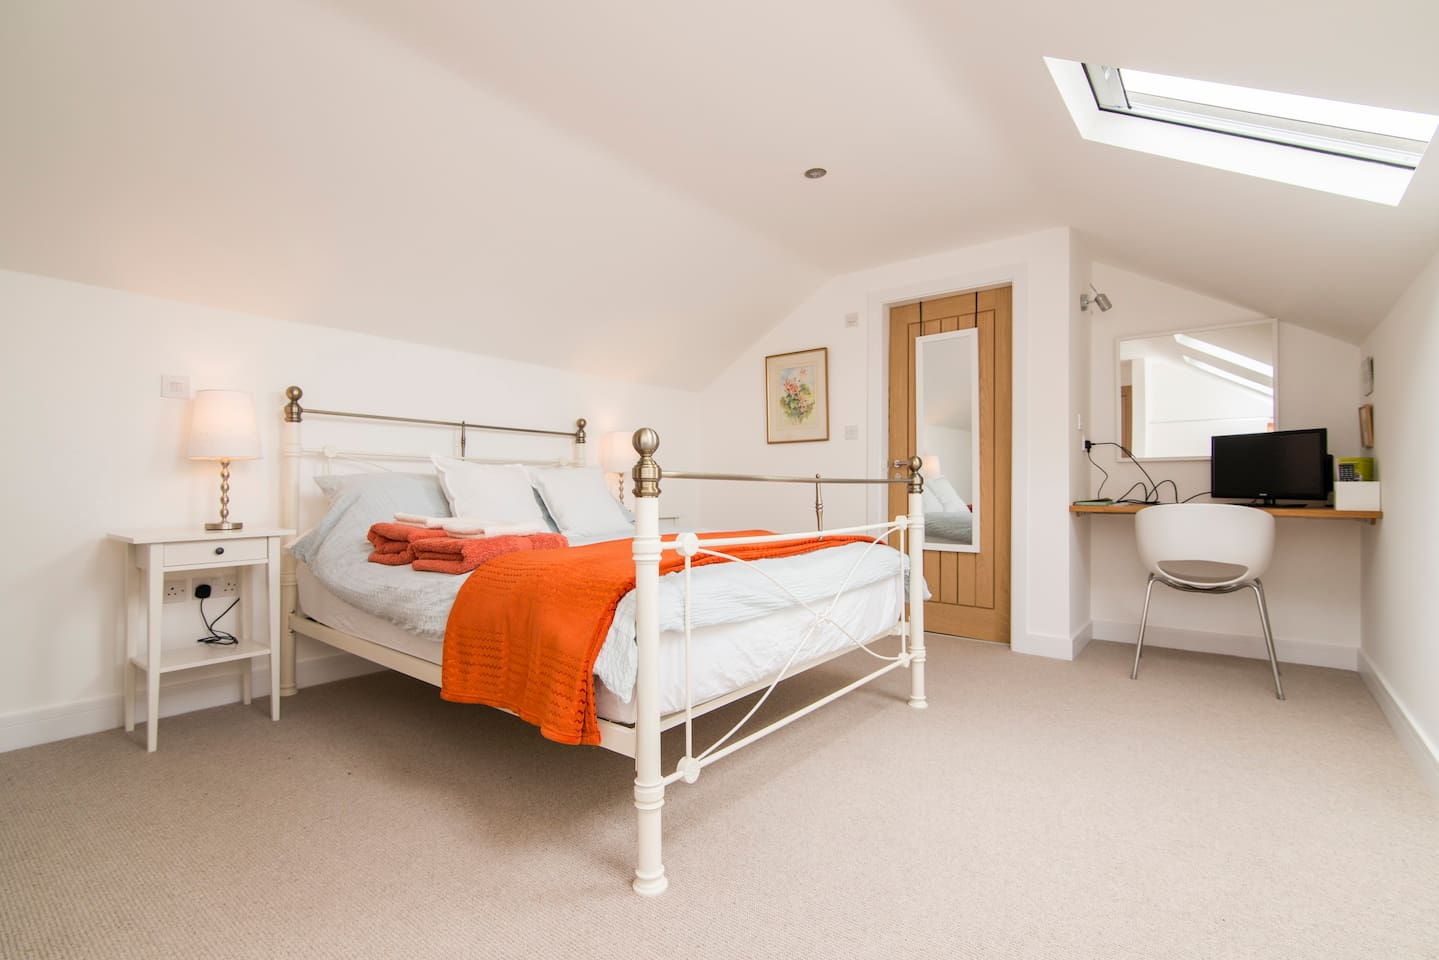 King size bed, desk space, storage/hanging space and ensuite. Every thing you need for a comfortable stay.